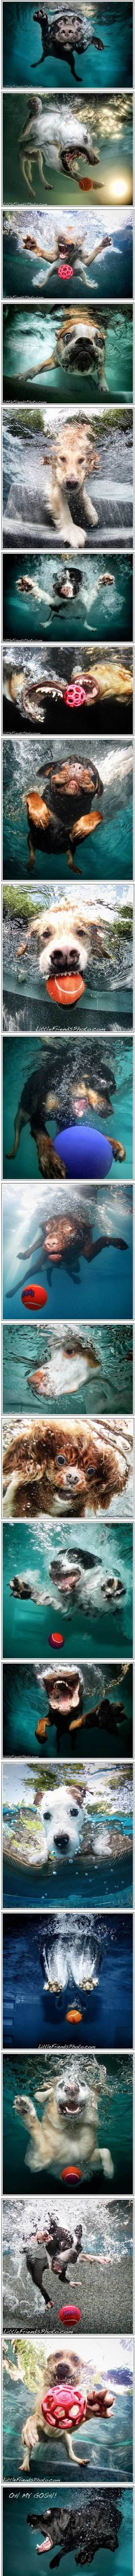 Ever wondered what the dogs look like when you throw the ball into the pool?